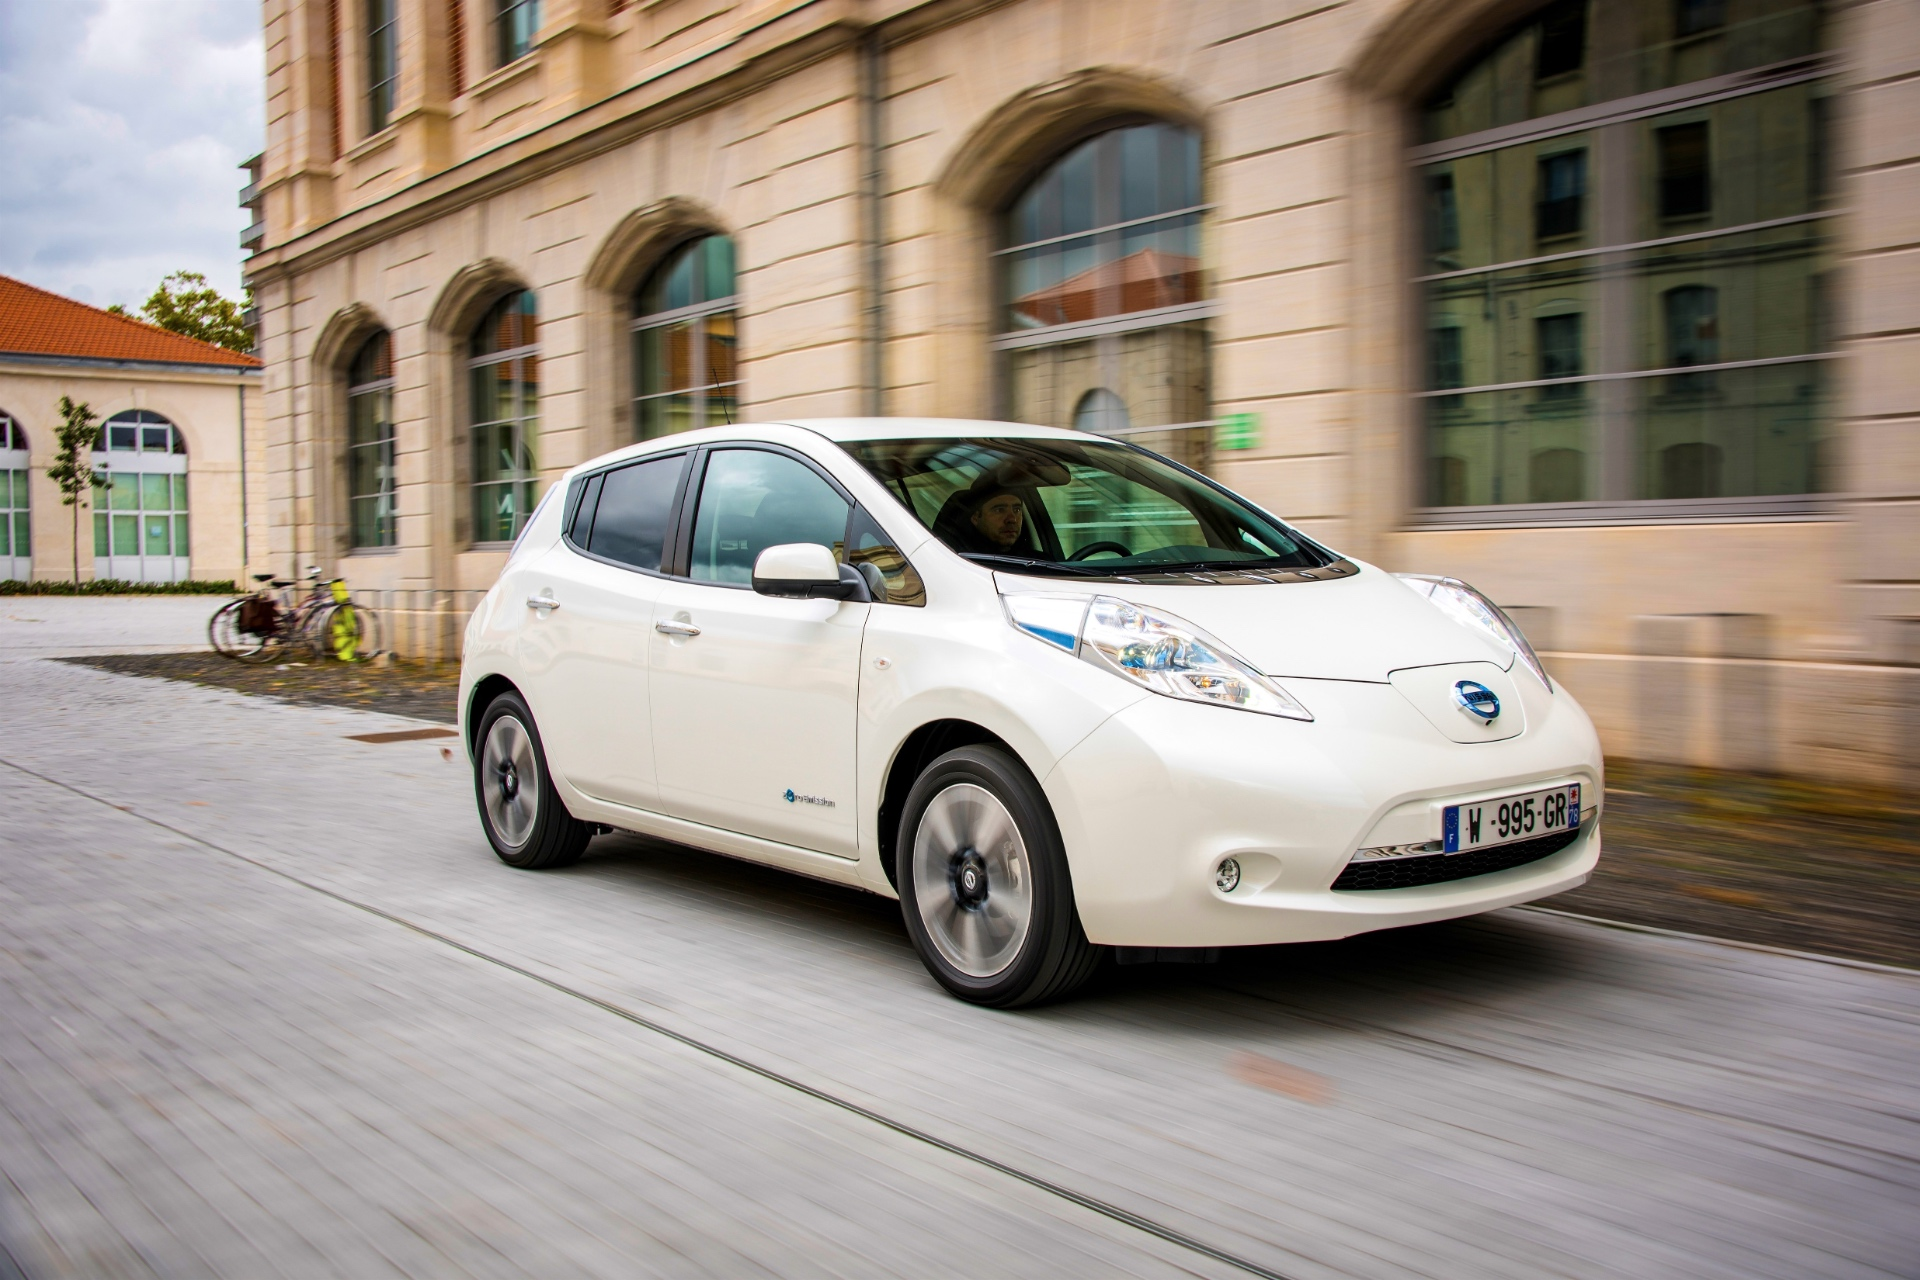 Nissan Leaf Vehicles Vulnerable to Hackers, Carmaker Working